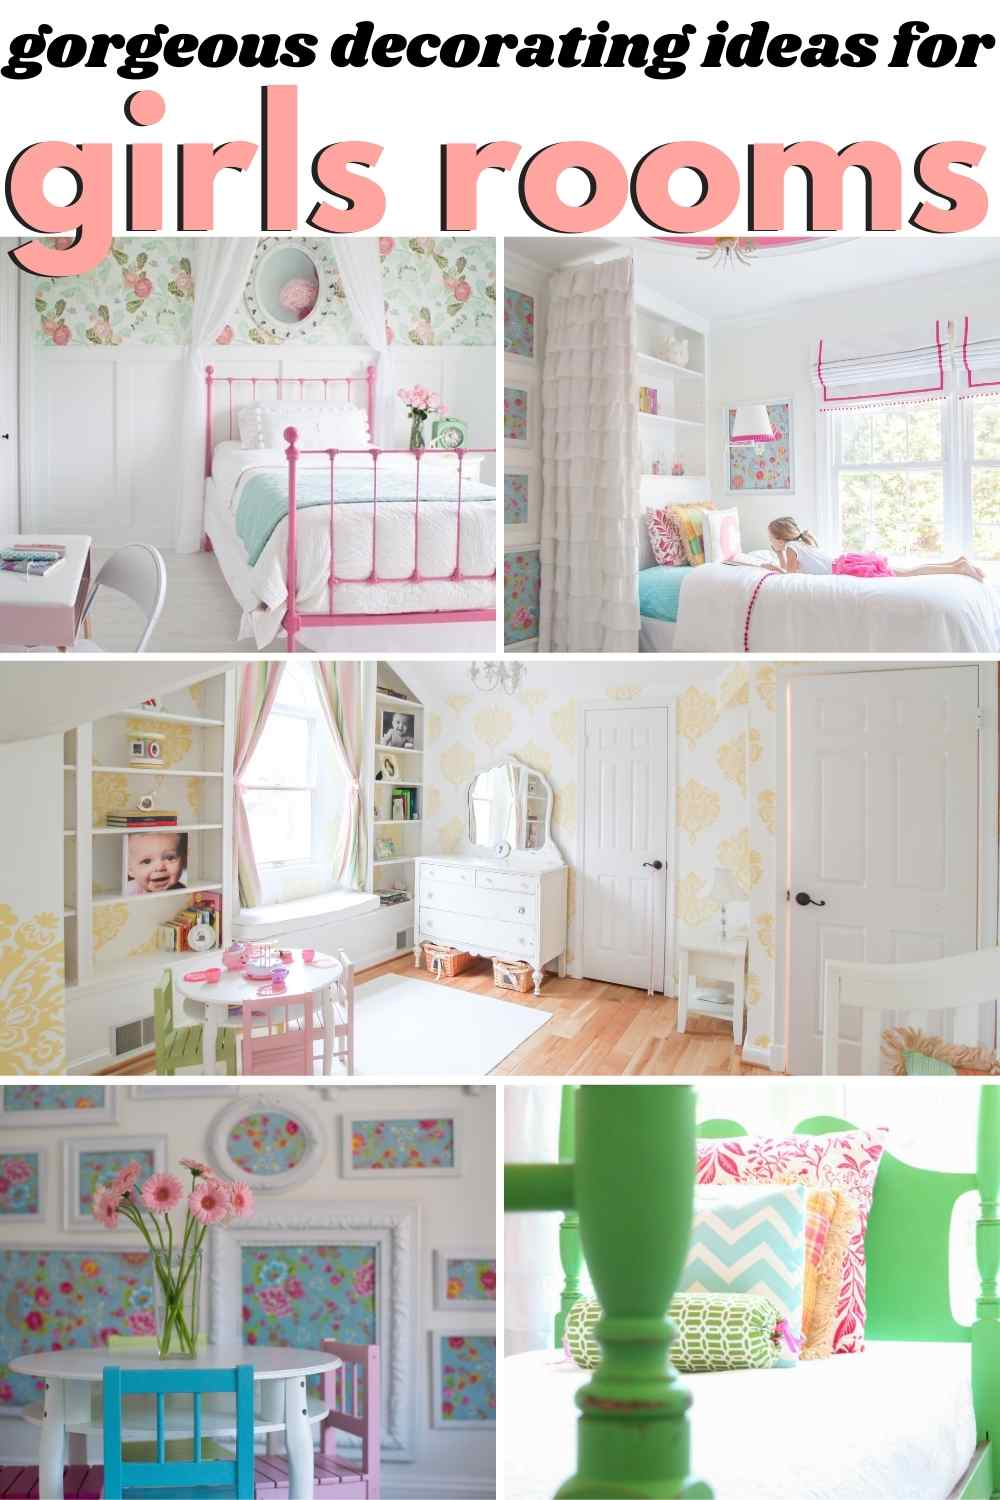 grid with 5 images of girls bedrooms. Text: gorgeous decorating ideas for girls rooms